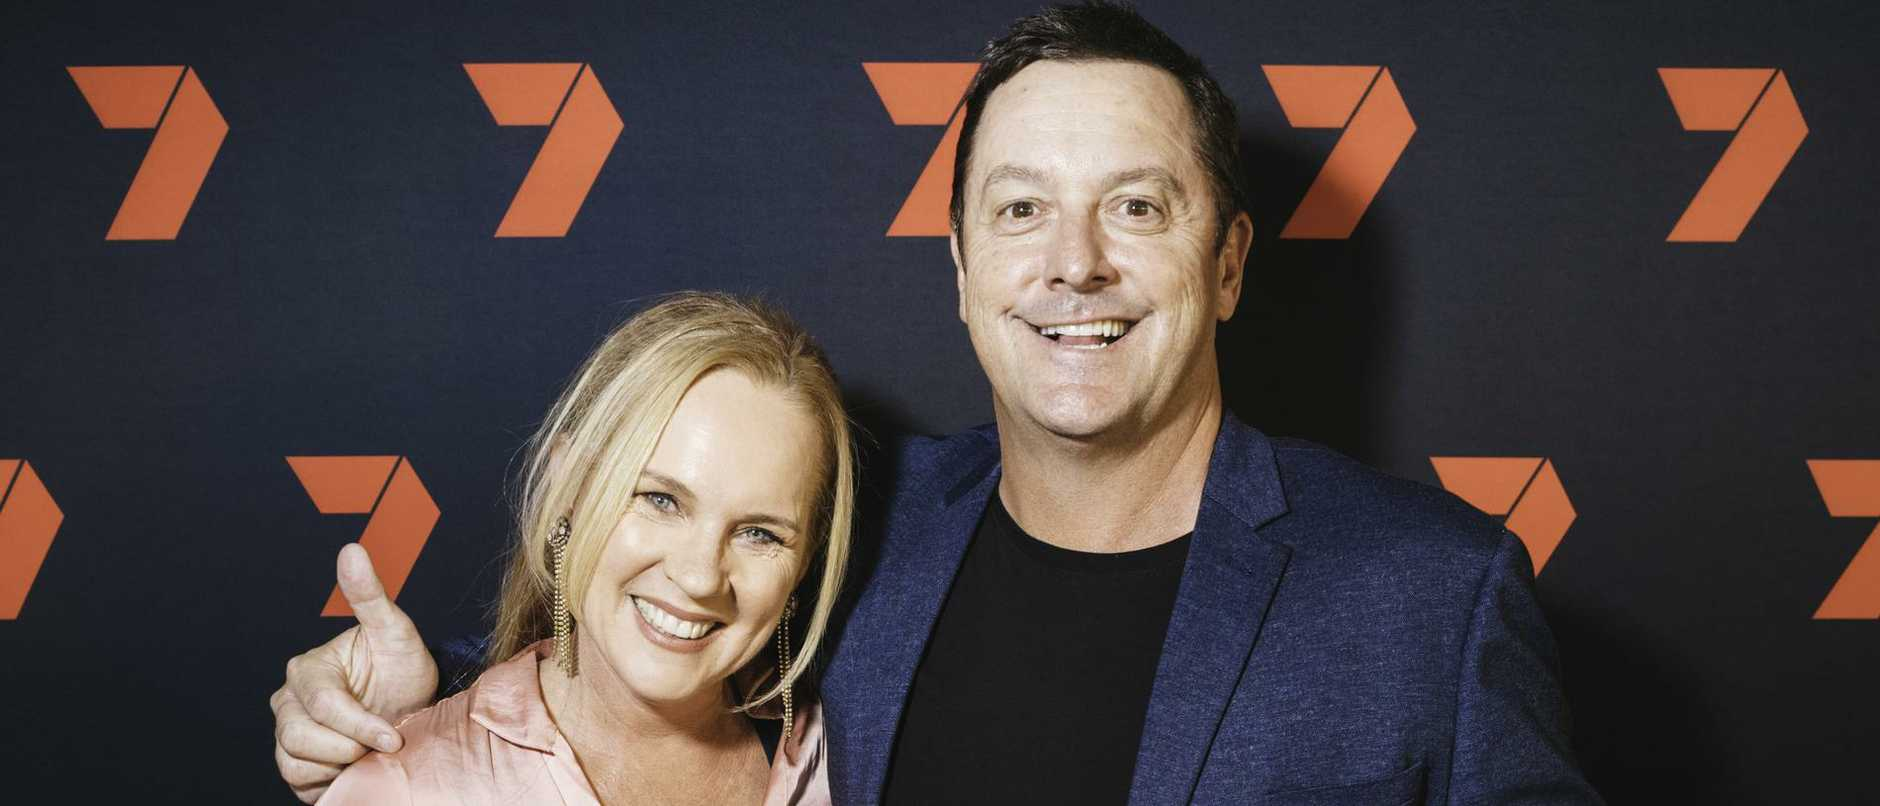 To make room for their new slate of prime-time national shows, Channel 7 has axed three local series that have been an institution for two decades.